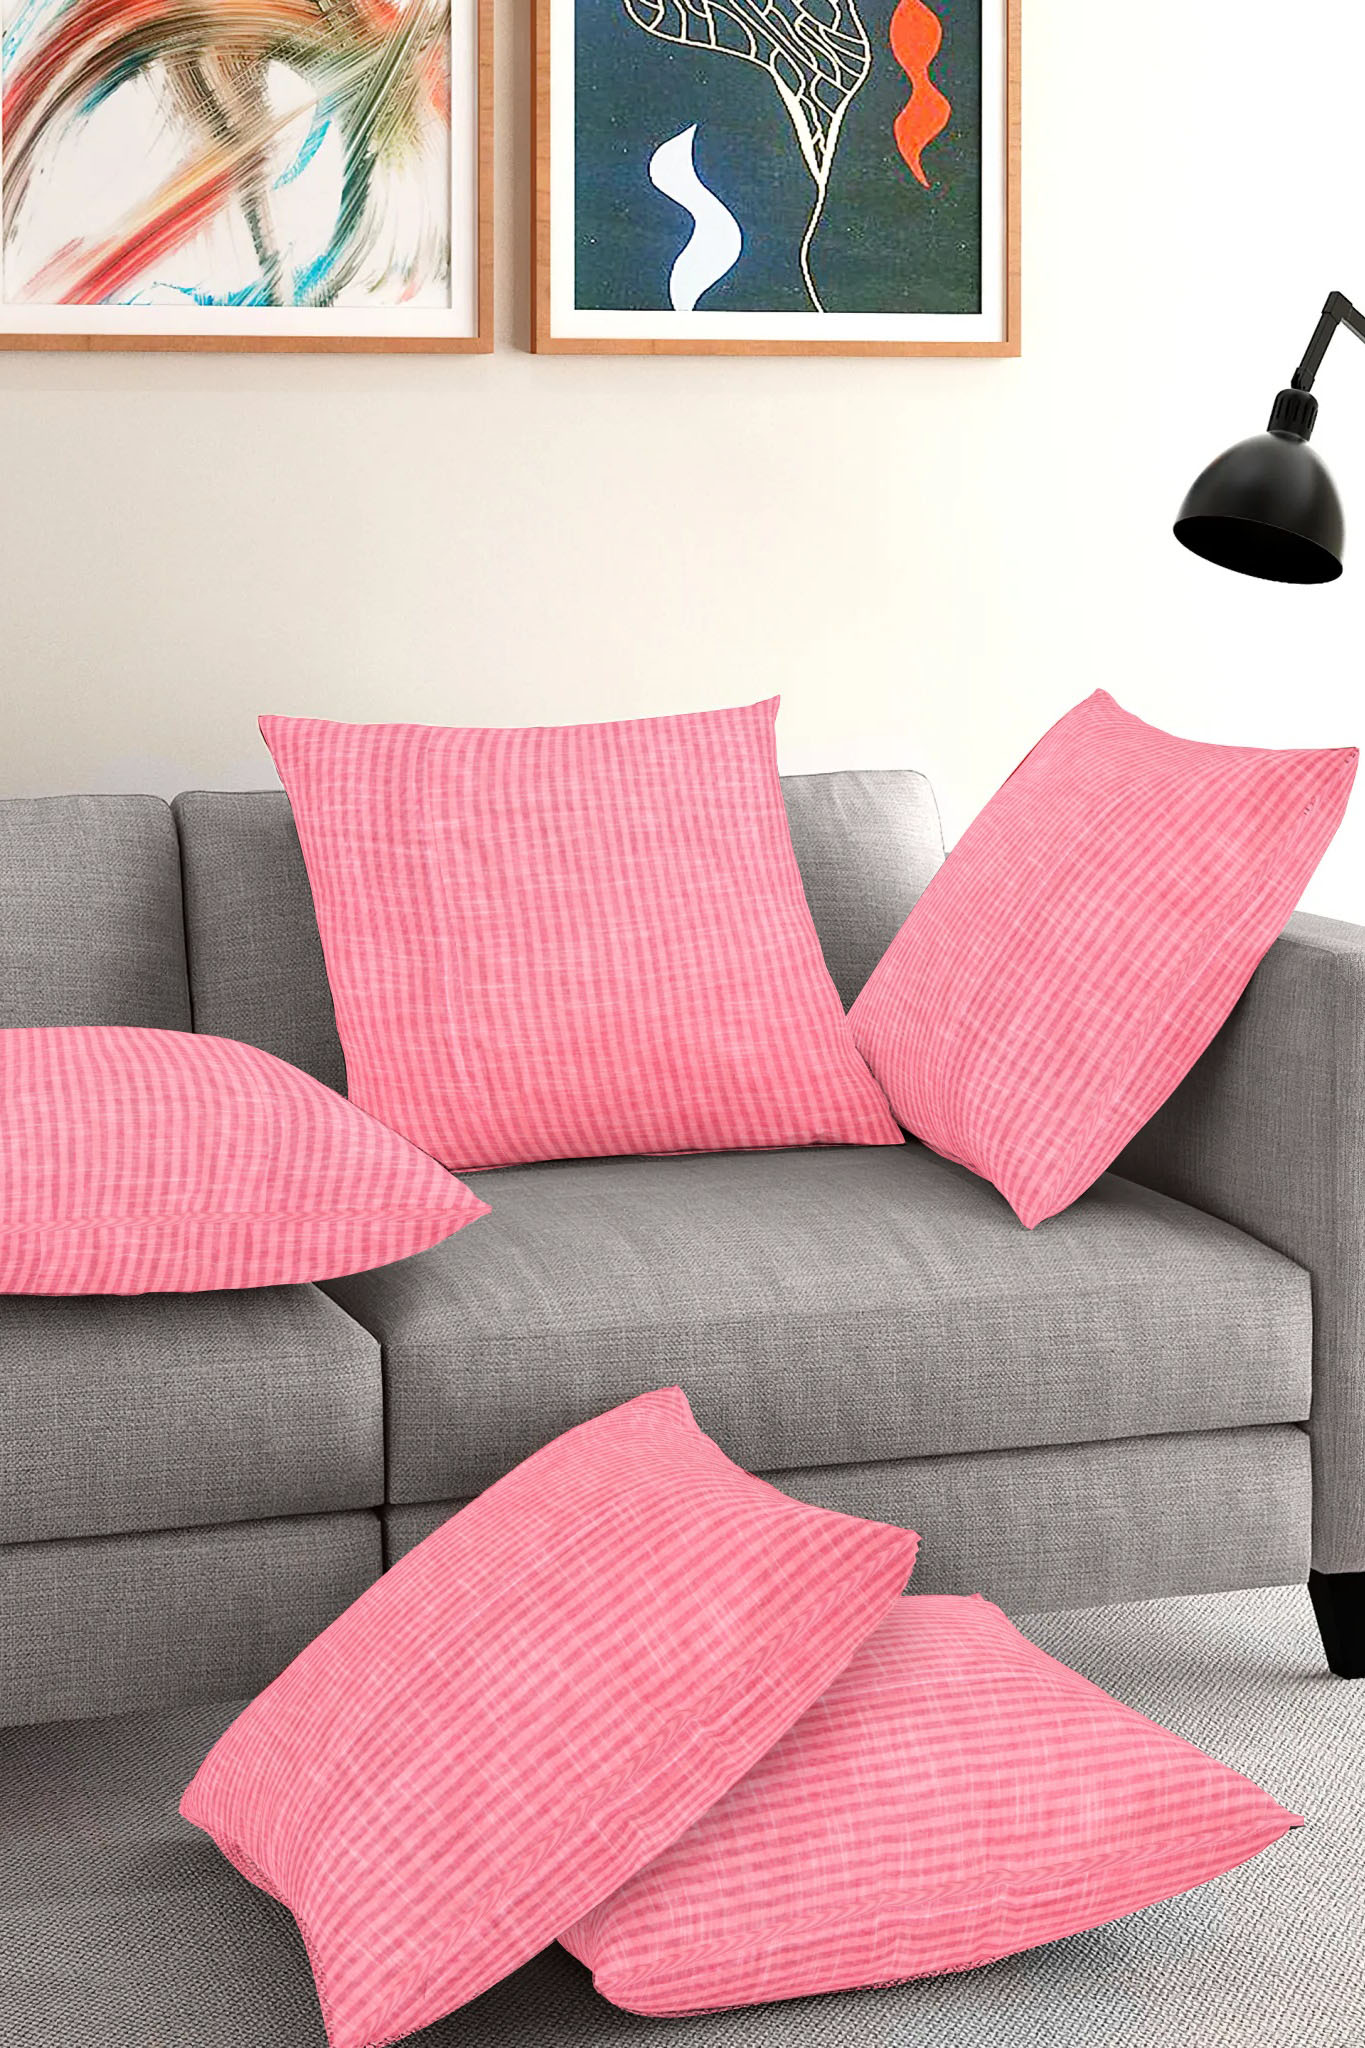 Set of 5-Pink White Cotton Cushion Cover-35399-16x16 Inches